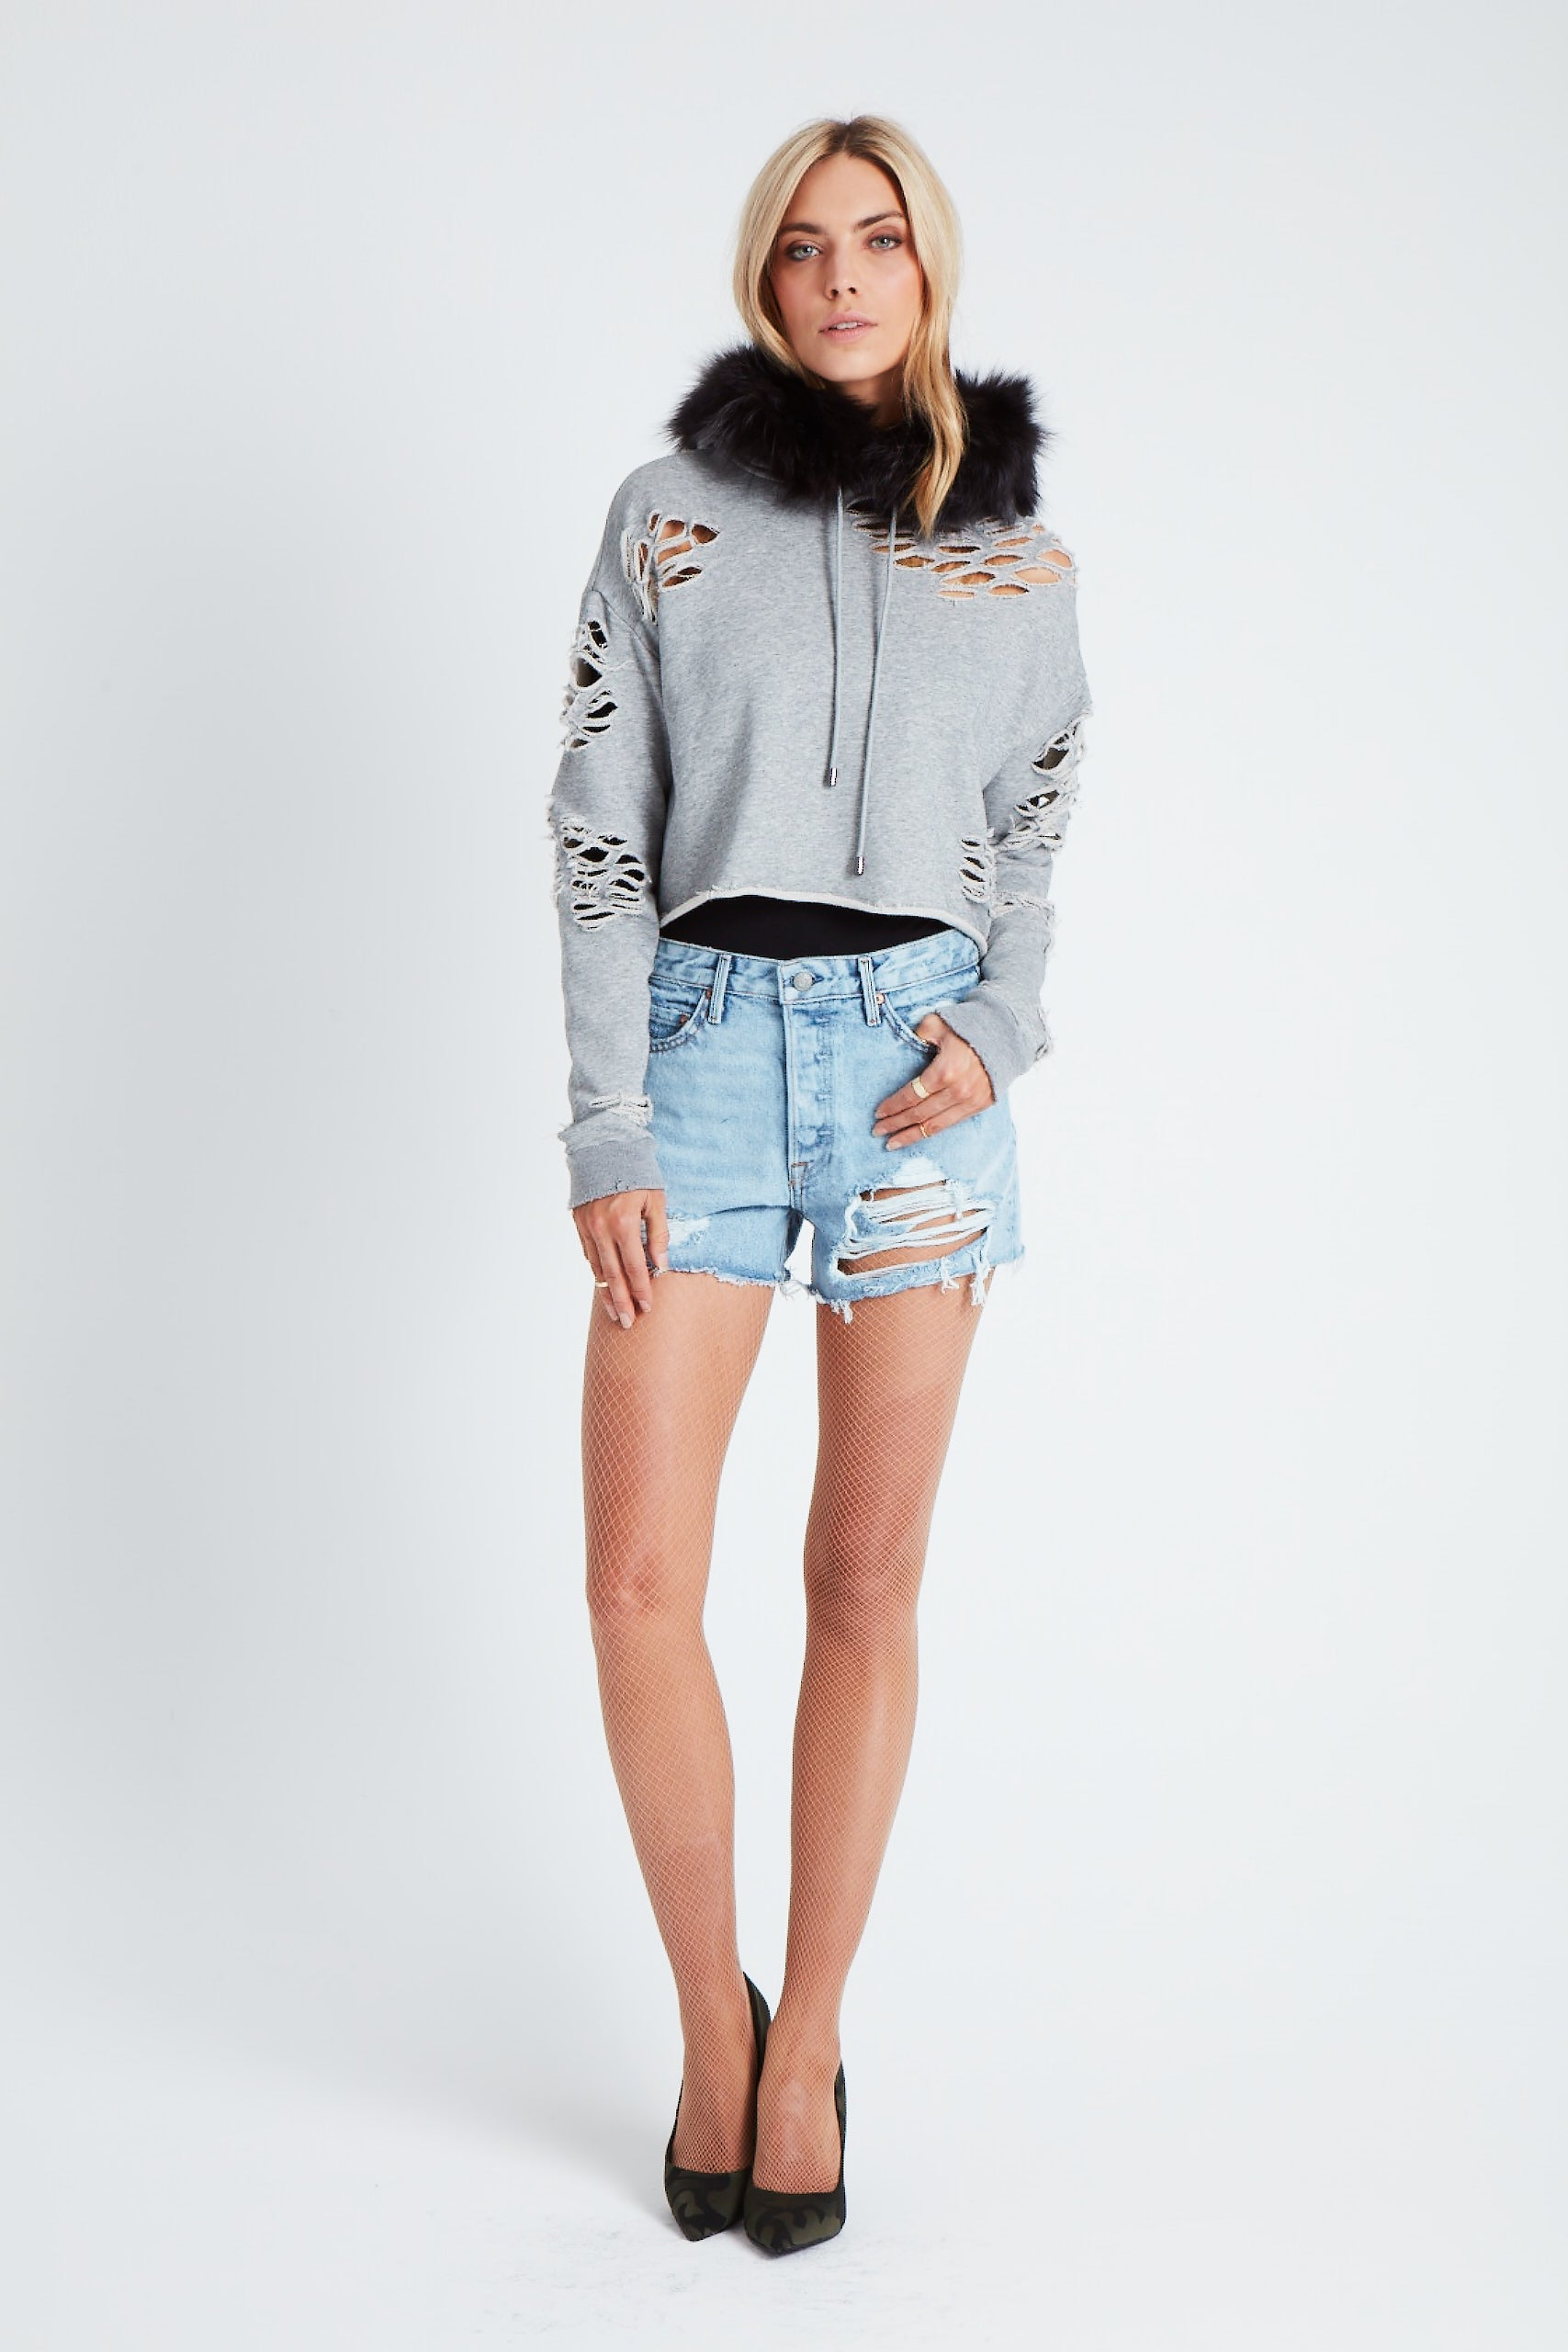 The Cropped Cluster Star Sweatshirt - Light Grey